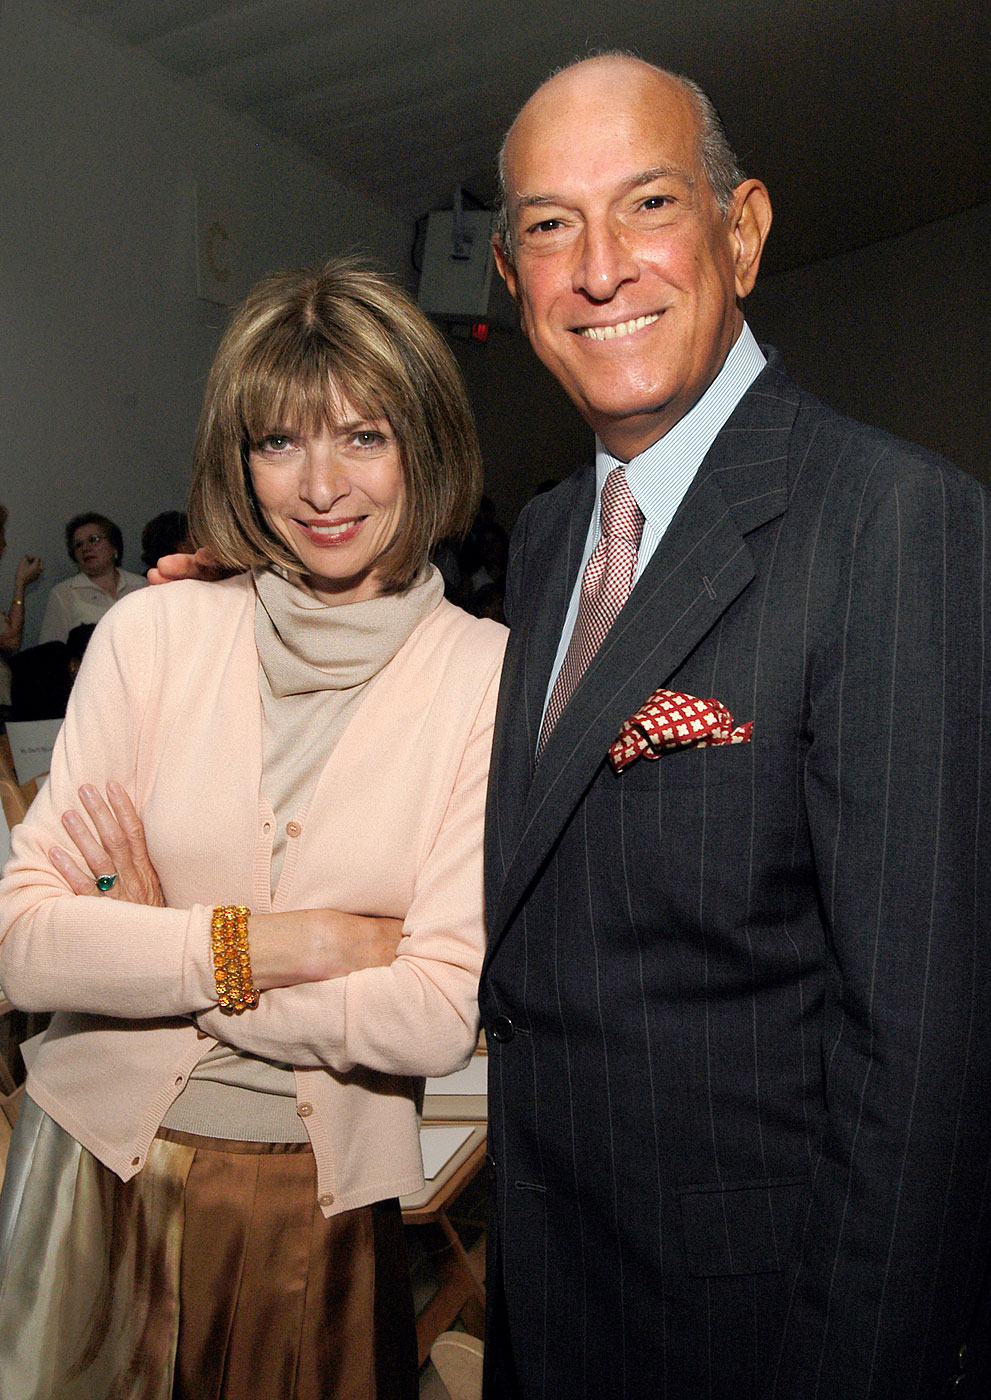 Anna Wintour and Oscar de la Renta during the Mercedes-Benz Fashion Week Spring 2004  at Bryant Park in New York City, New York.